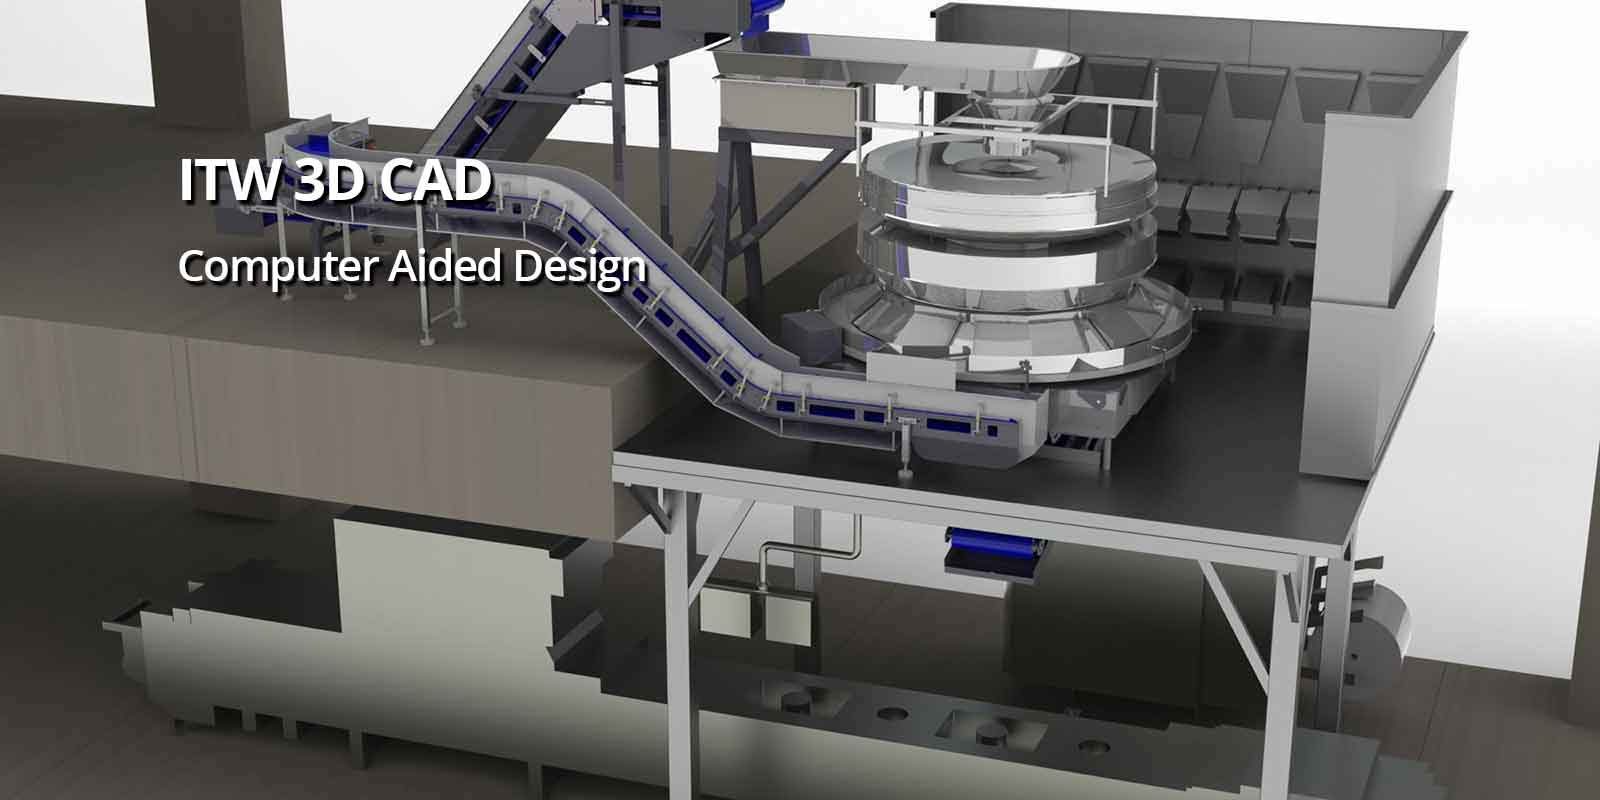 ITW 3D CAD Computer Aided Design